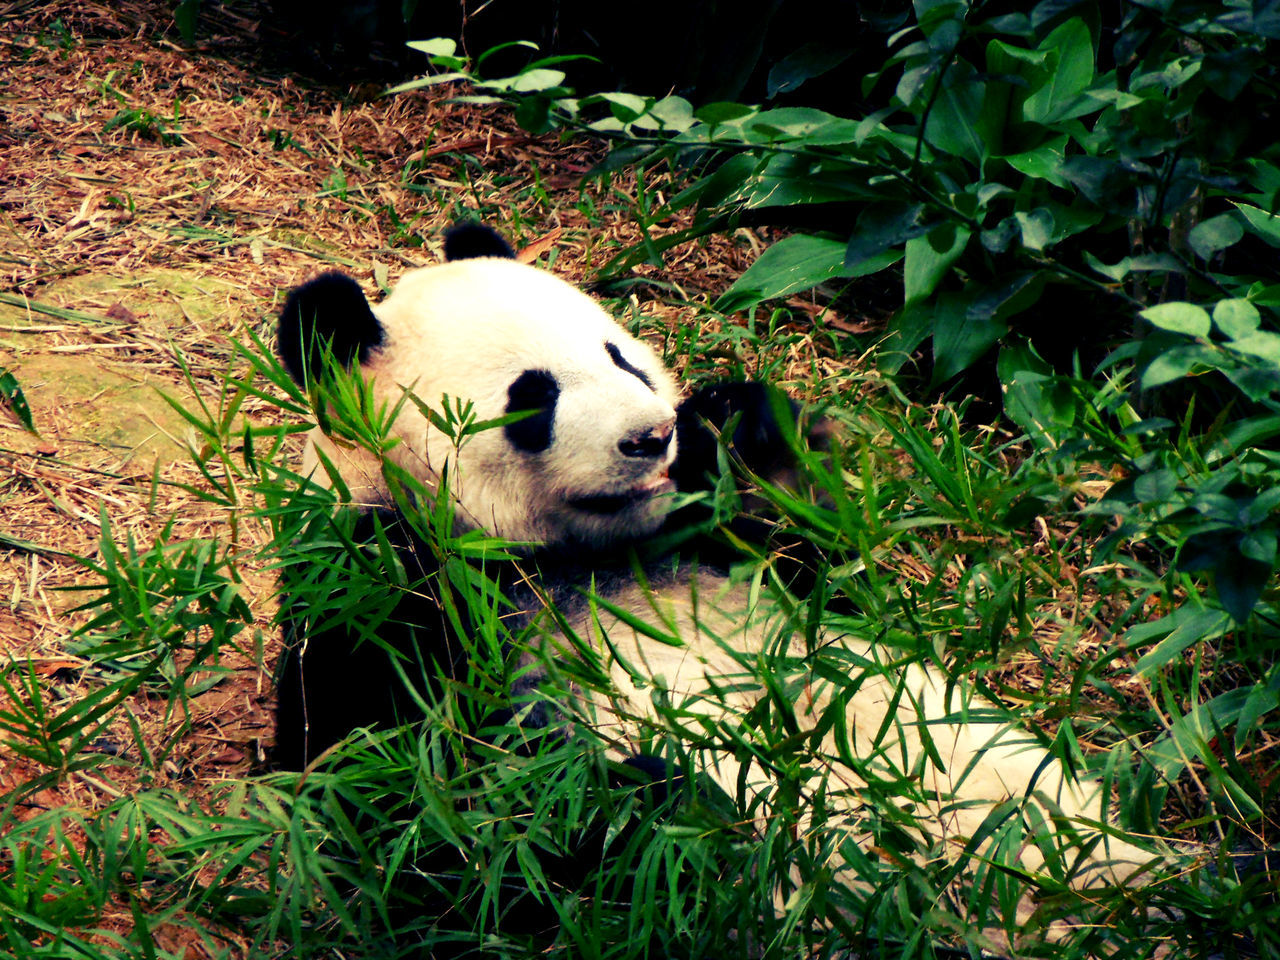 Animal Themes Bamboo Giant Panda Laid Back Life Mammal One Animal Panda - Animal Panda Bear Singapore Zoological Garden Way Of Life